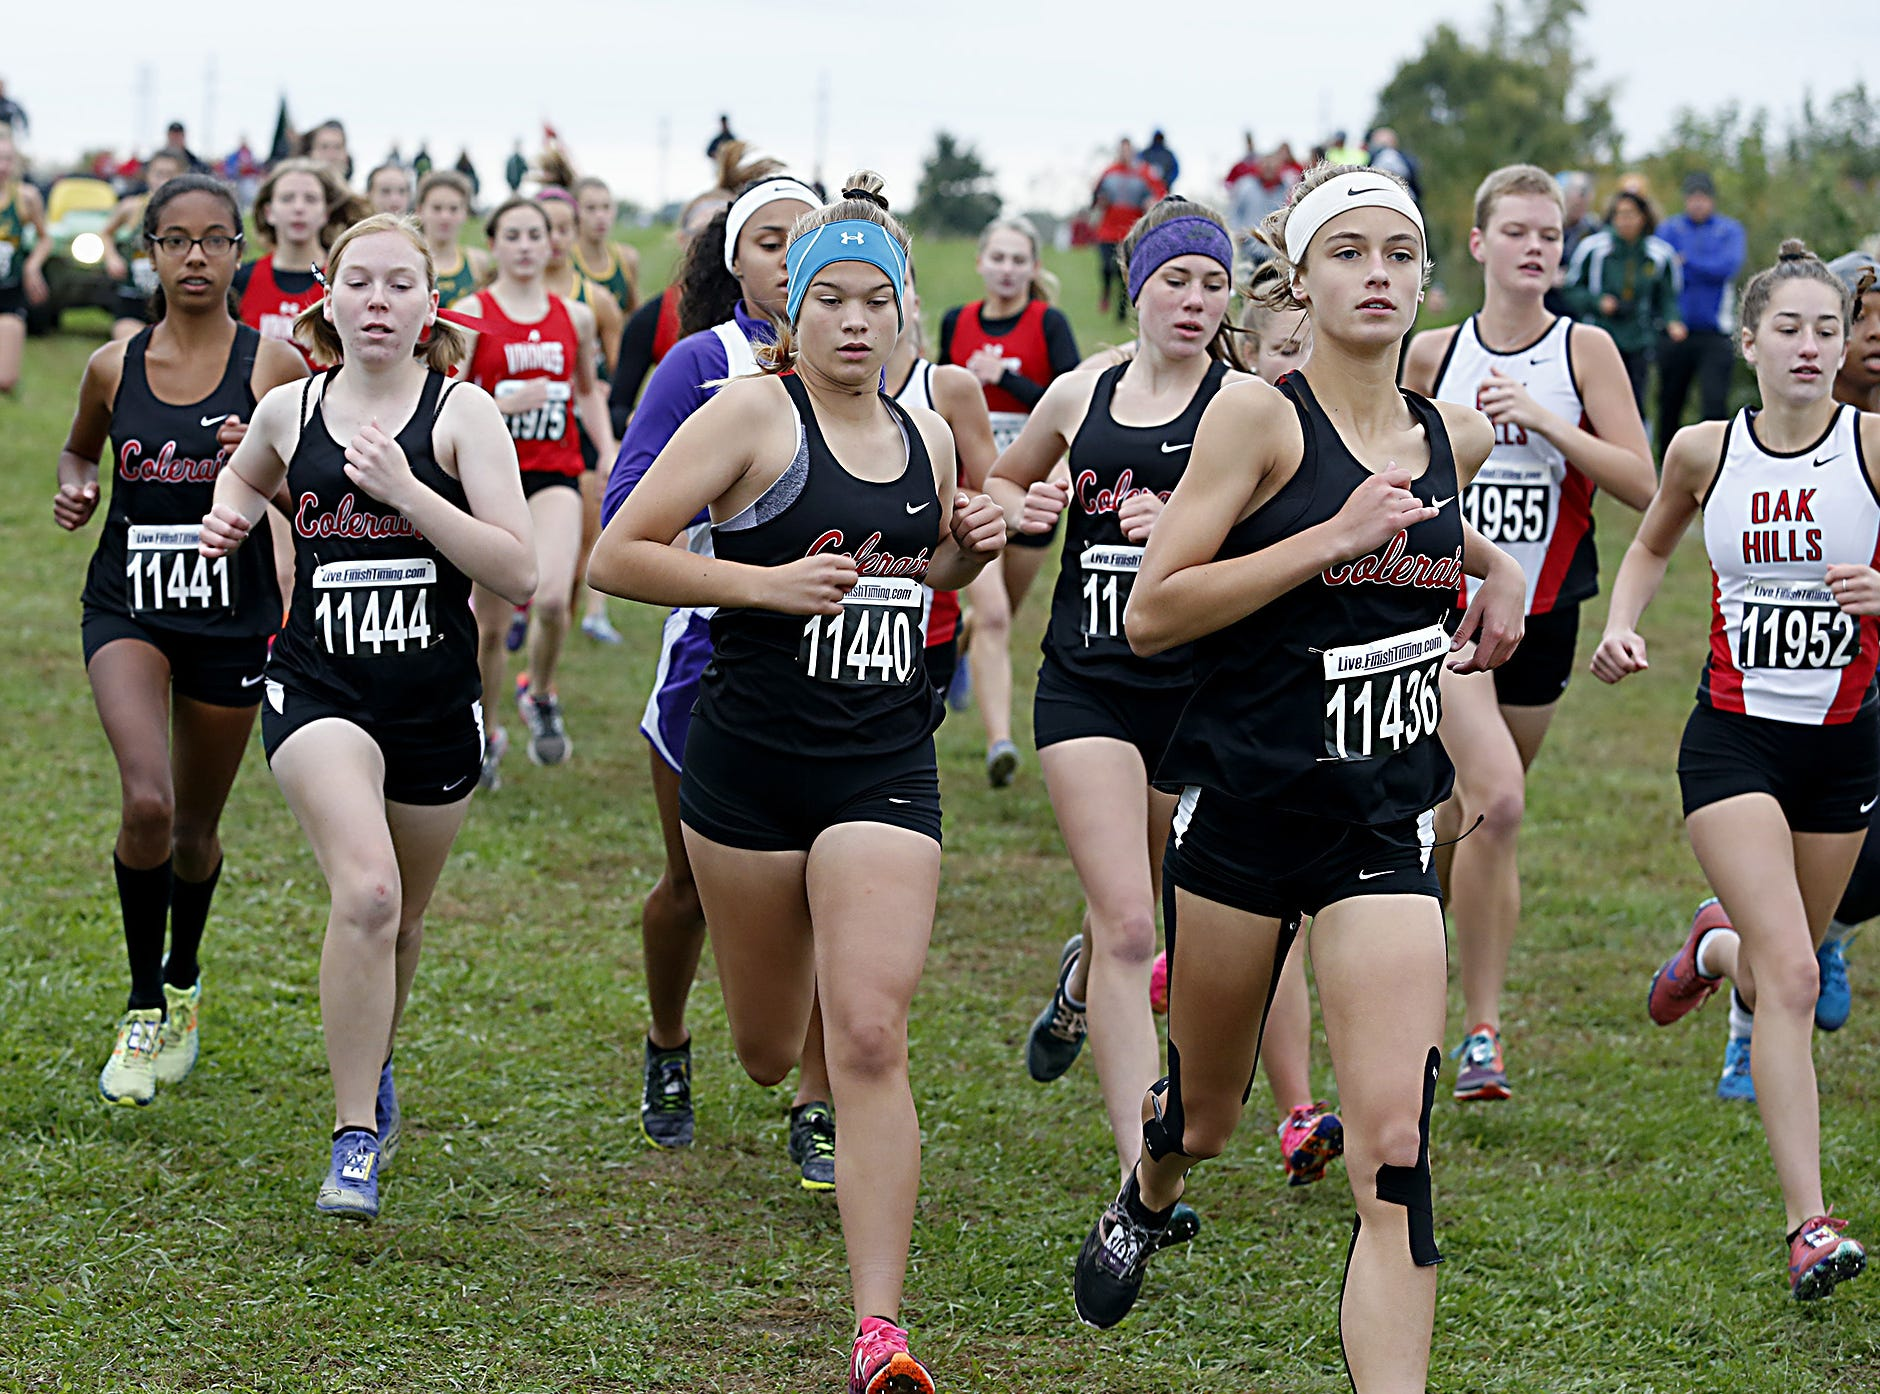 The Colerain girls run together during the Greater Miami Conference Girls and Boys Cross Country Championships at Voice of America Park in West Chester Saturday, Oct. 13, 2018.